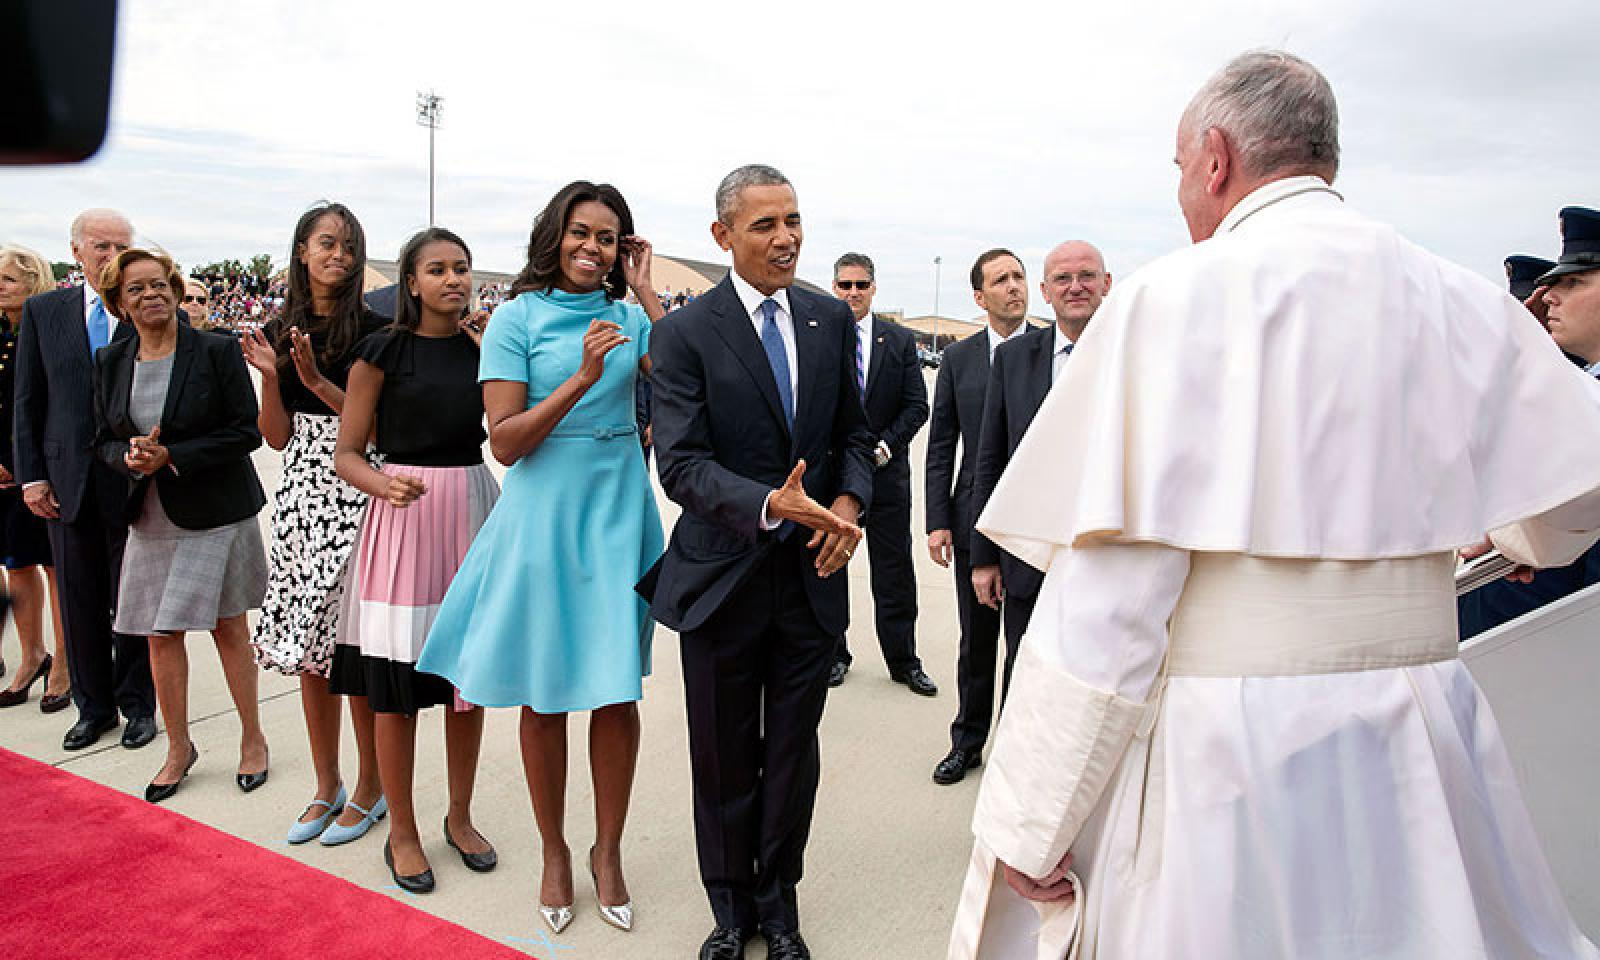 Obamas meet the Pope